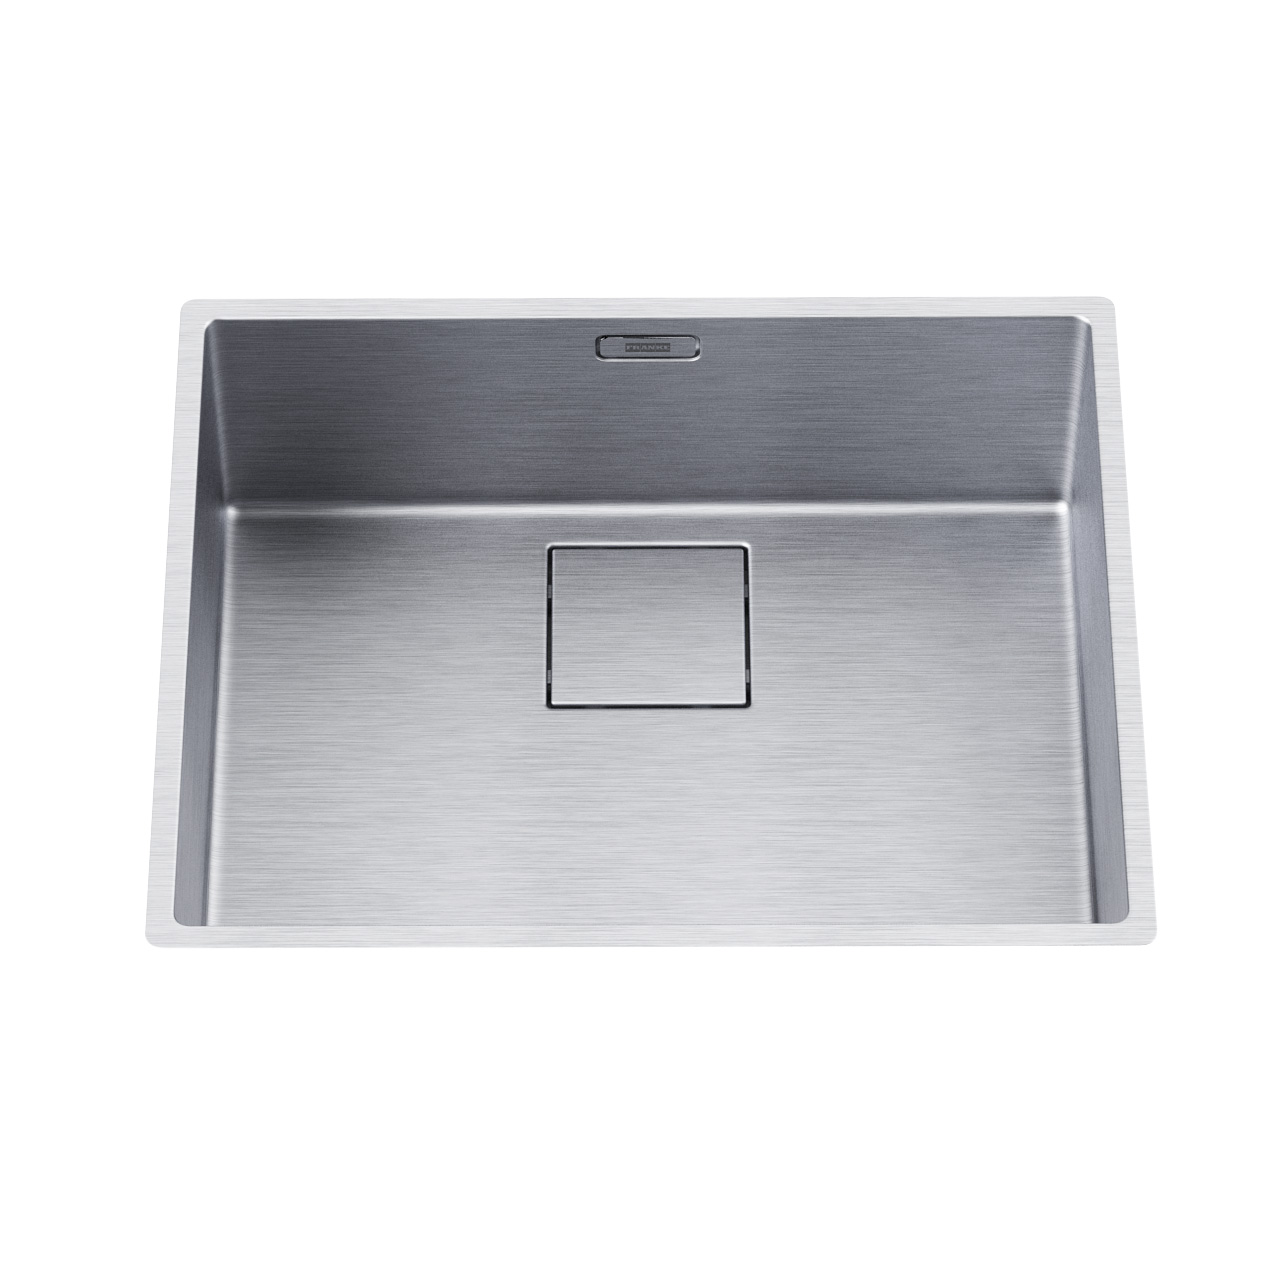 Centinox Kitchen Sink by Franke